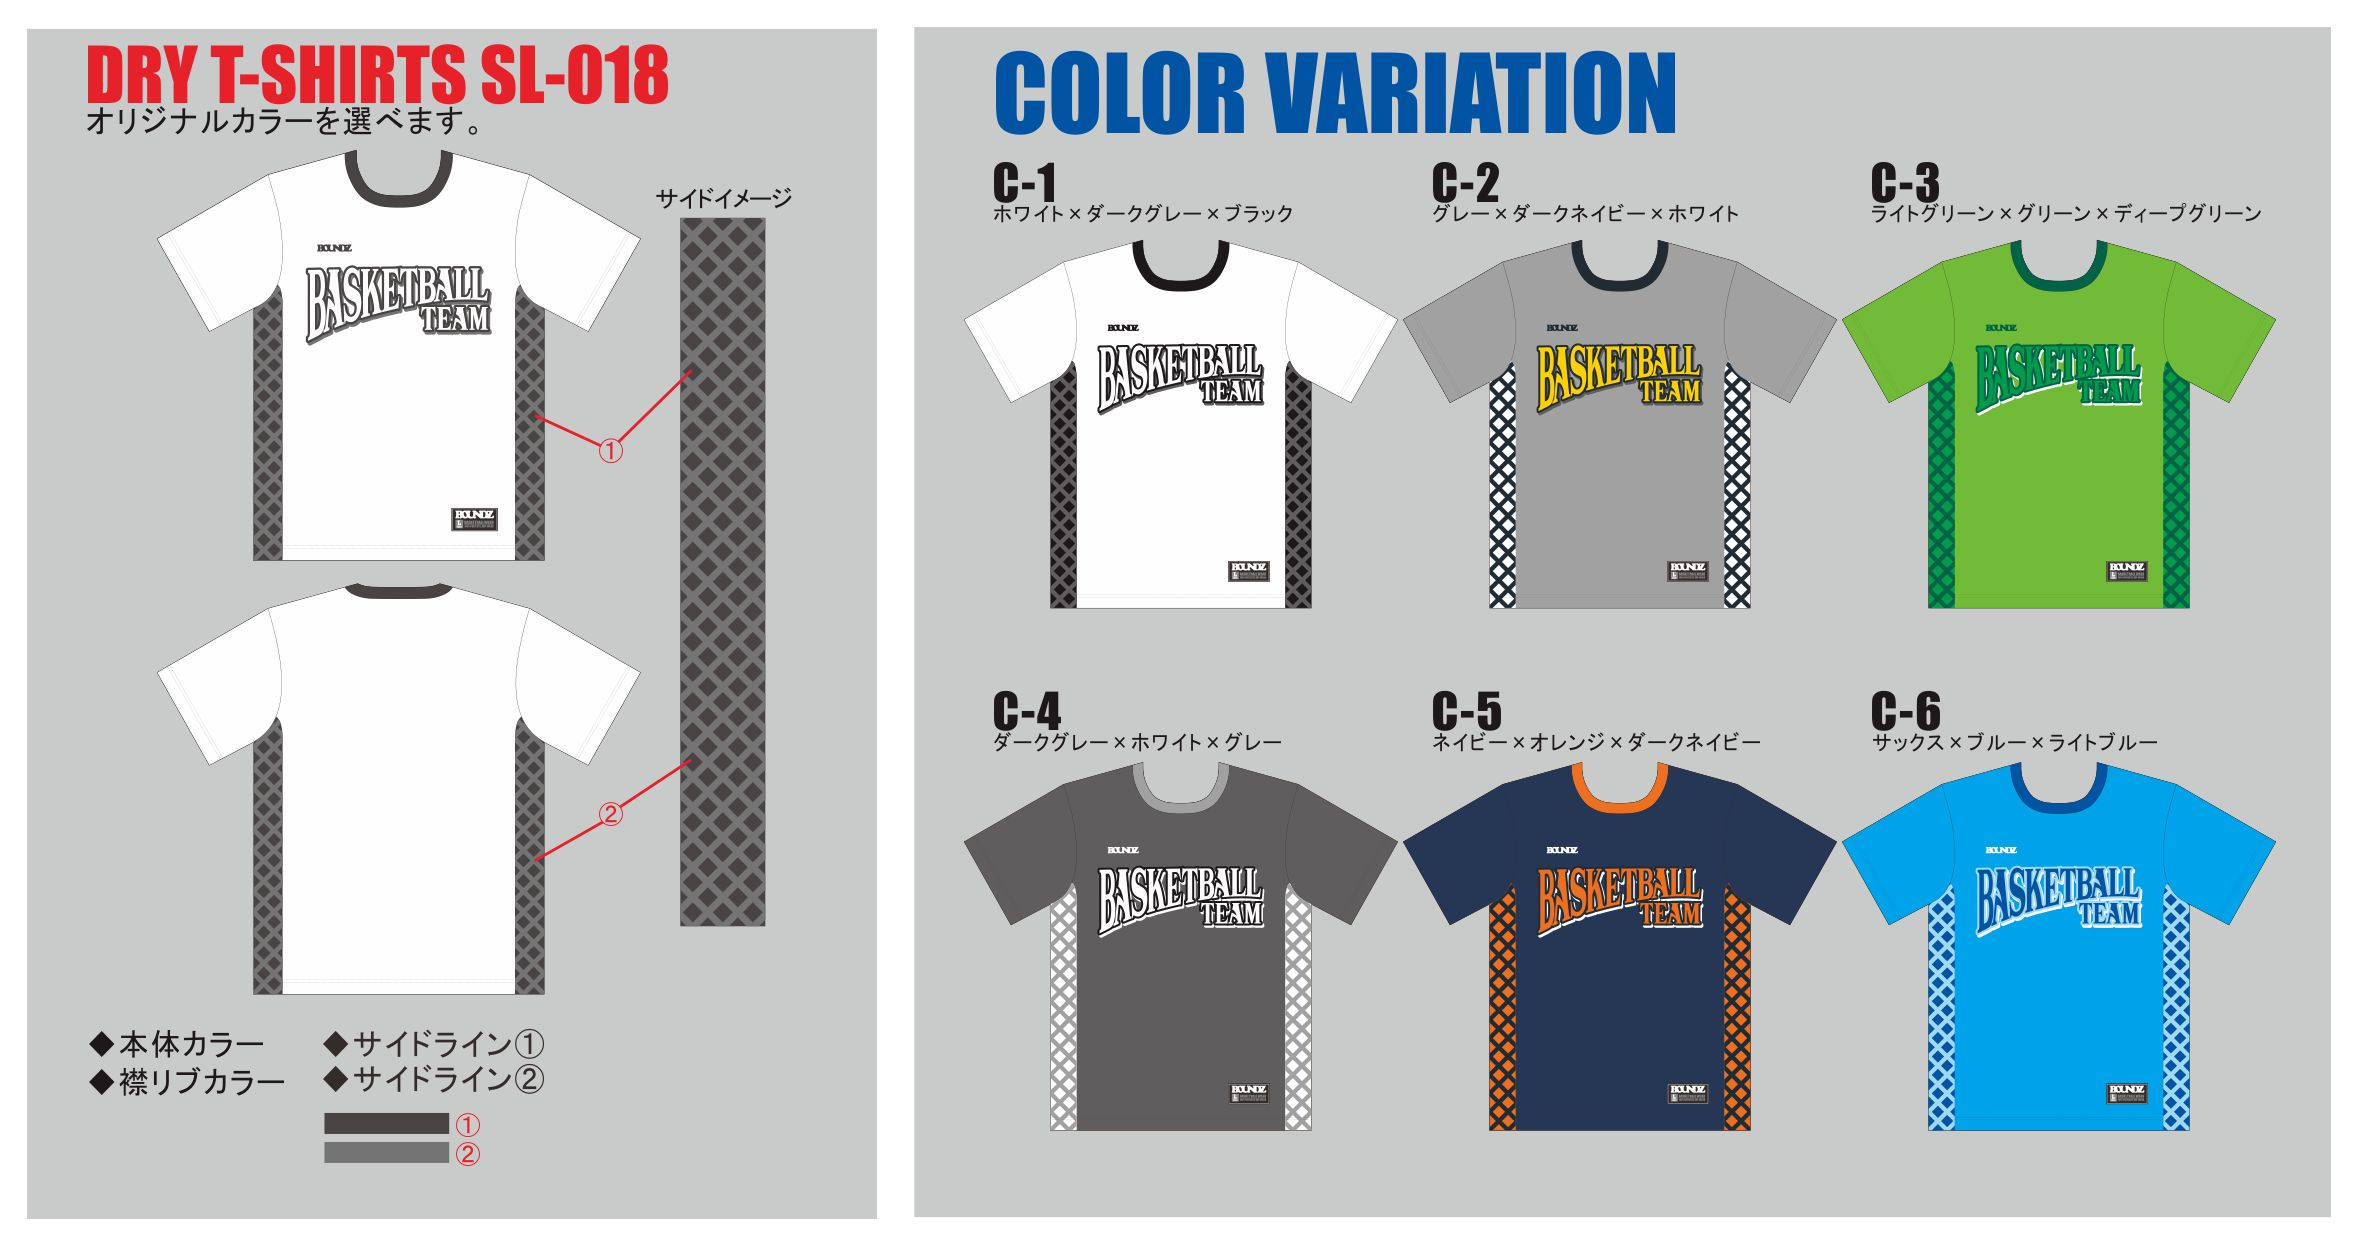 Tshirt_SL018_color